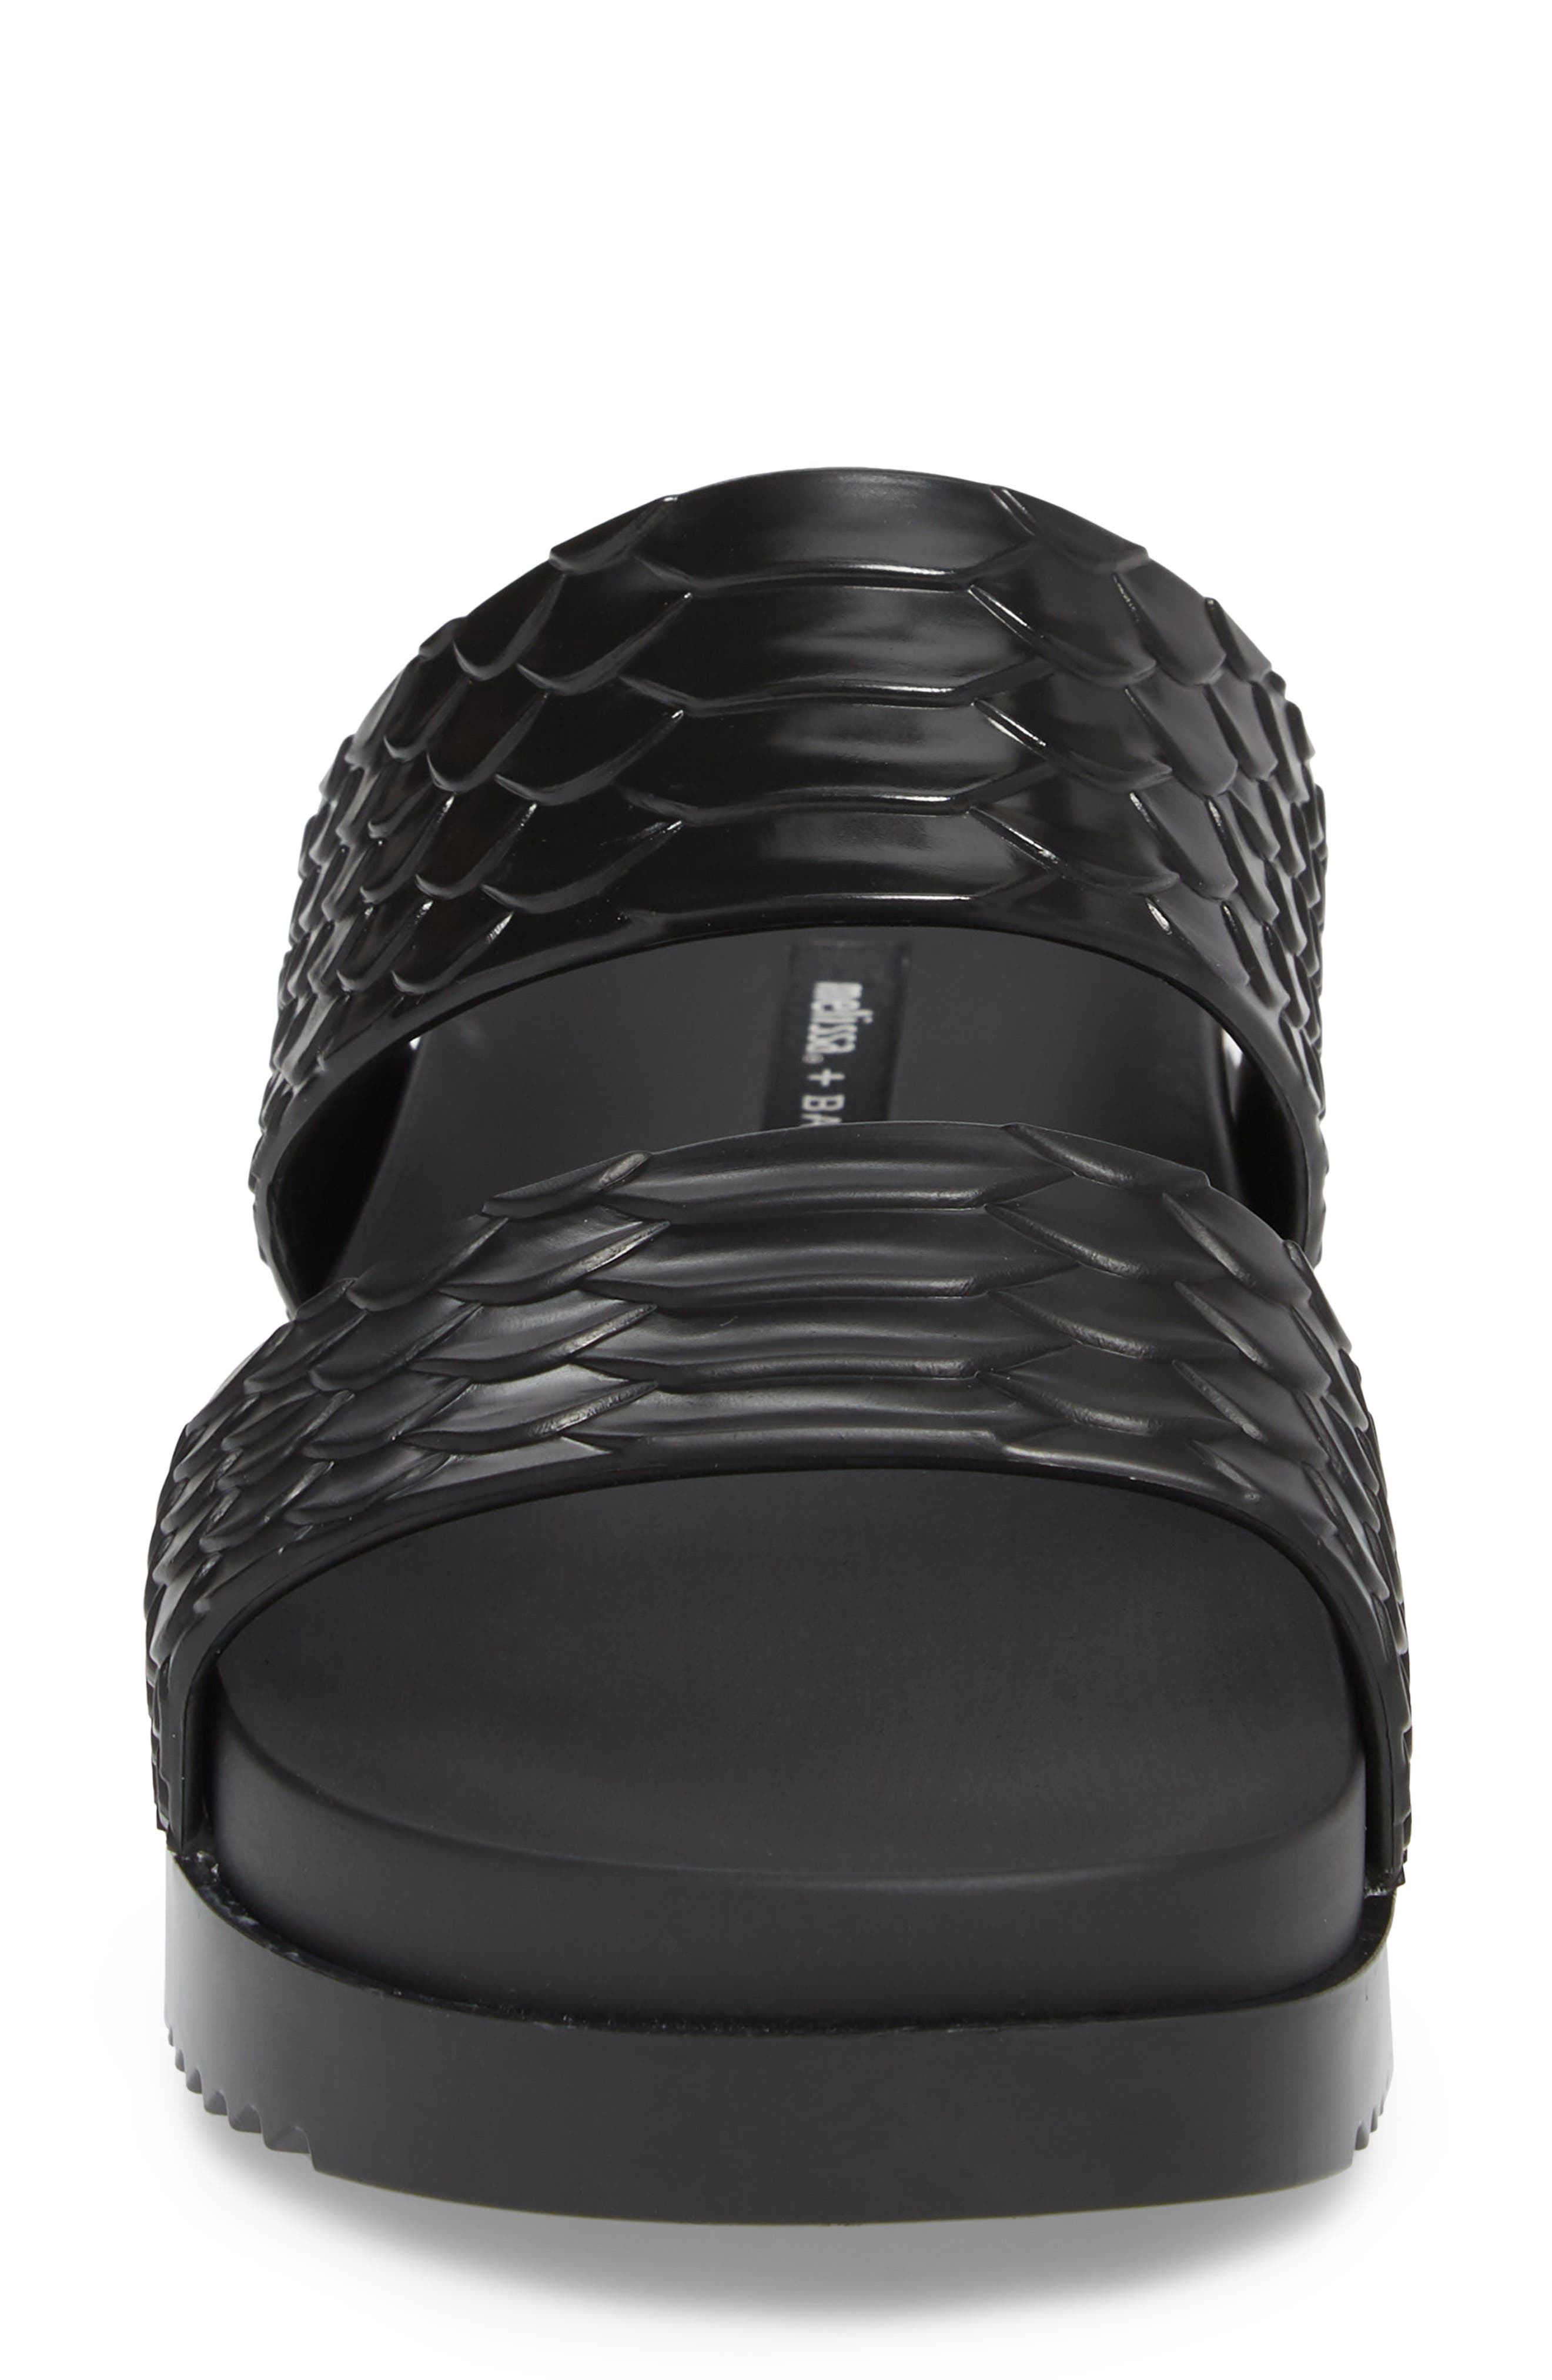 Cosmic Python Baja Slide Sandal,                             Alternate thumbnail 4, color,                             001